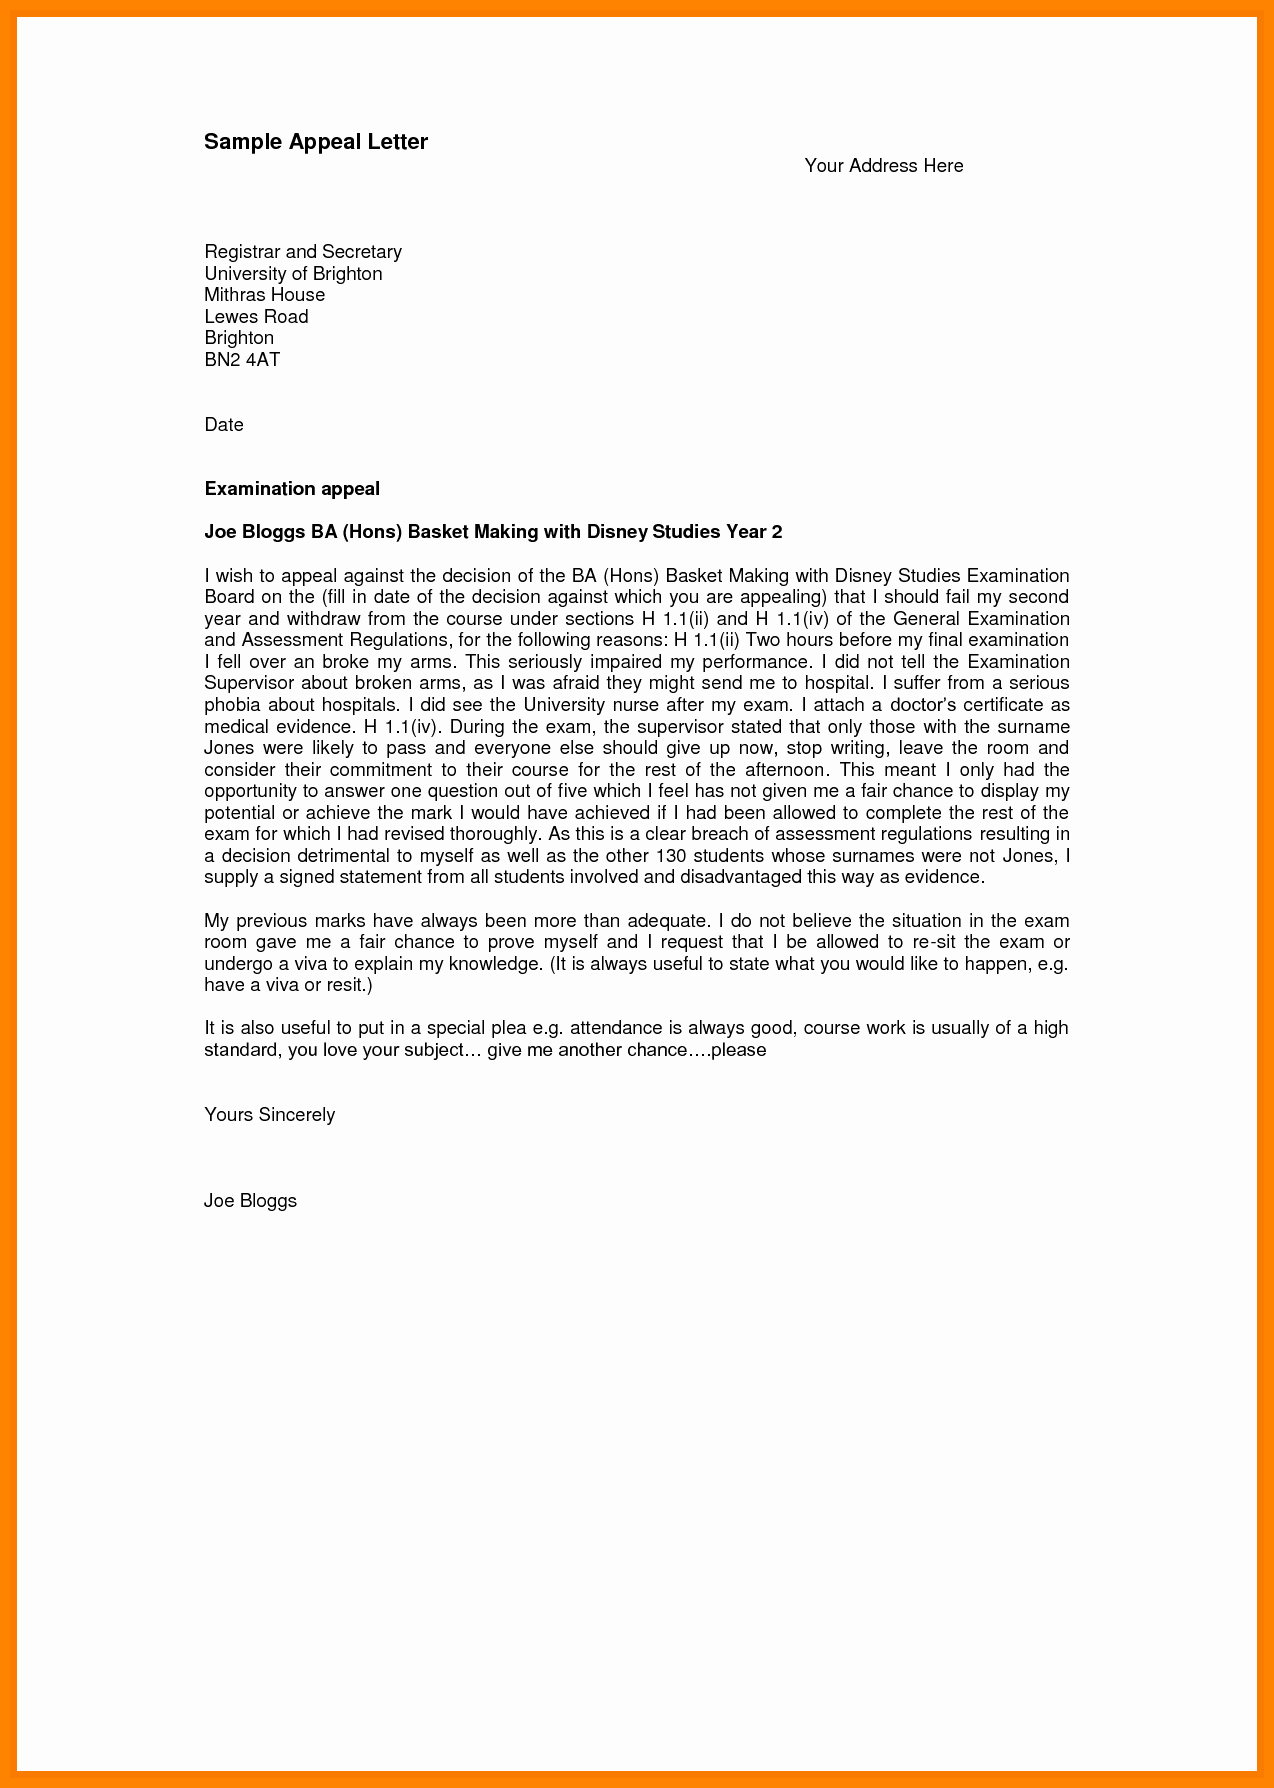 Sample Sap Appeal Letter Elegant 7 Sap Appeal Letter Example